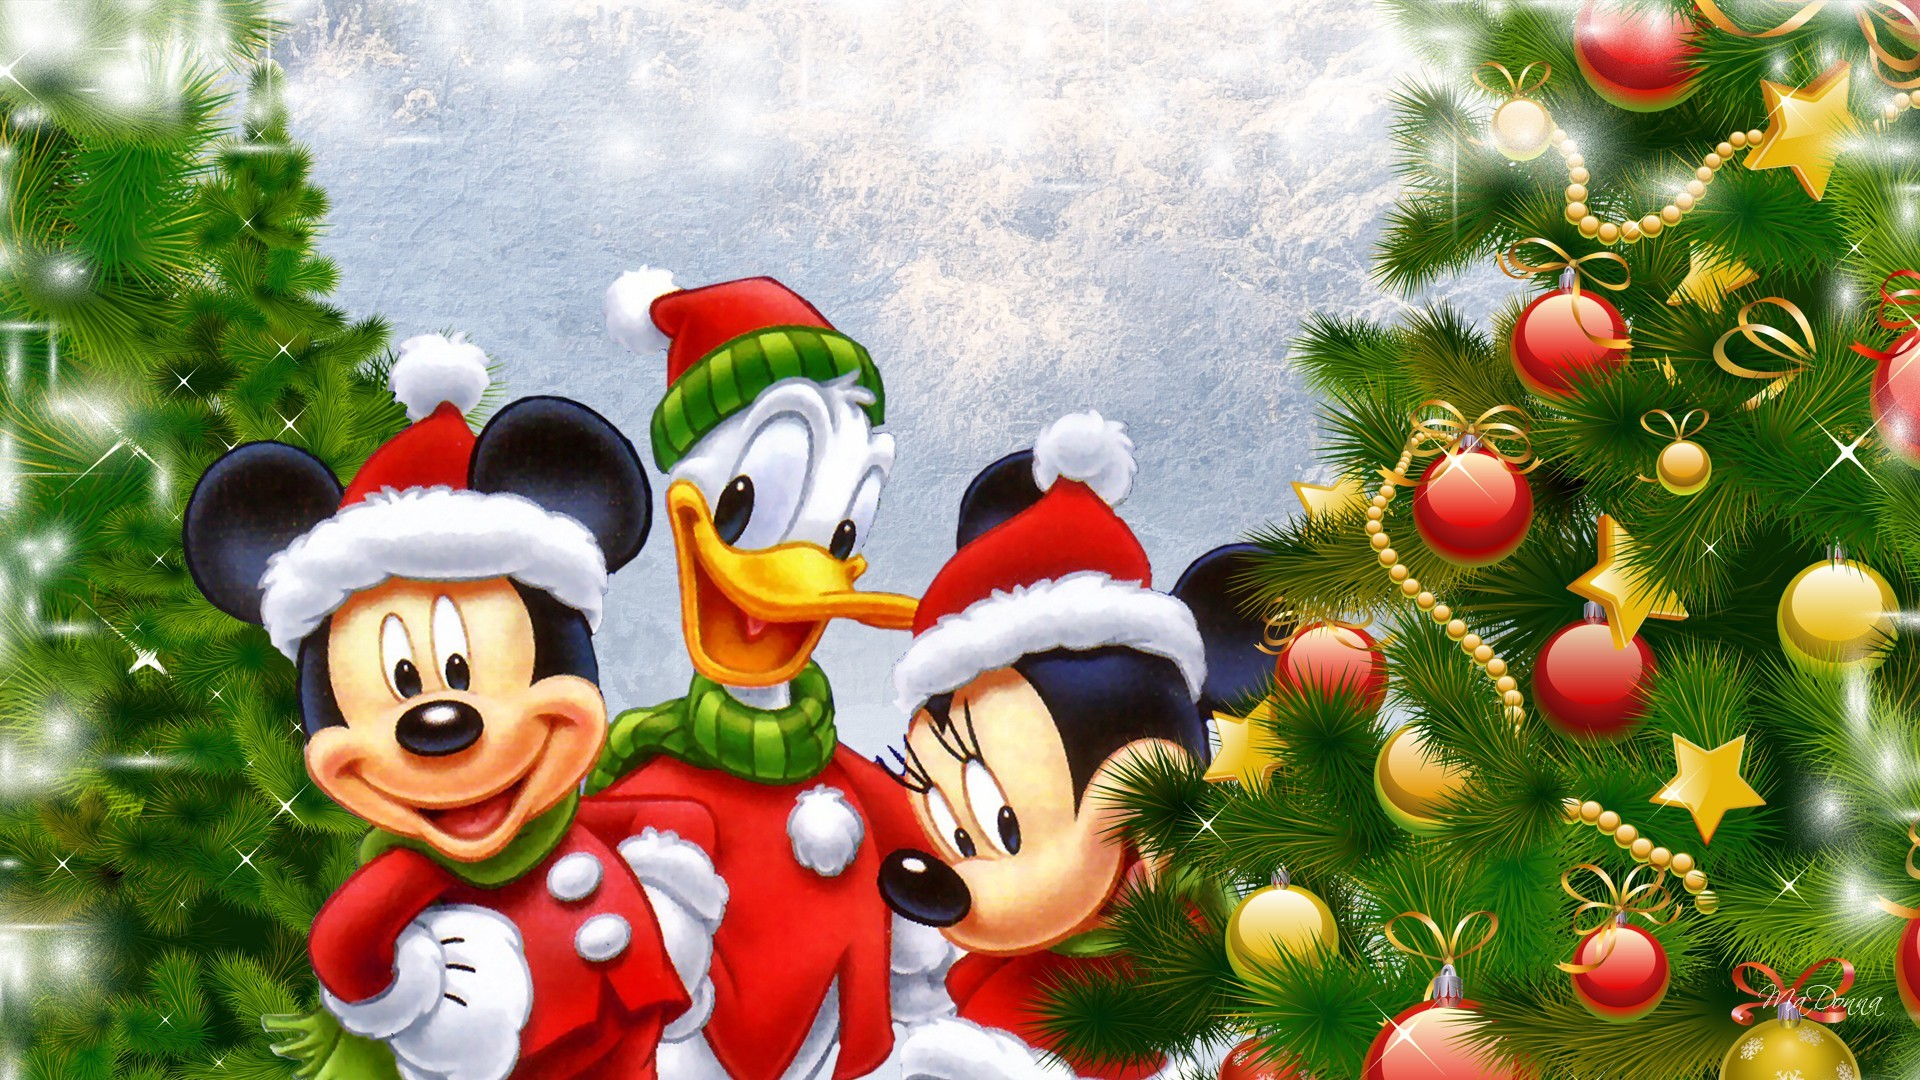 1920x1080 ... disney donald duck mickey and minnie mouse christmas tree desktop;  mickey minnie wallpapers ...